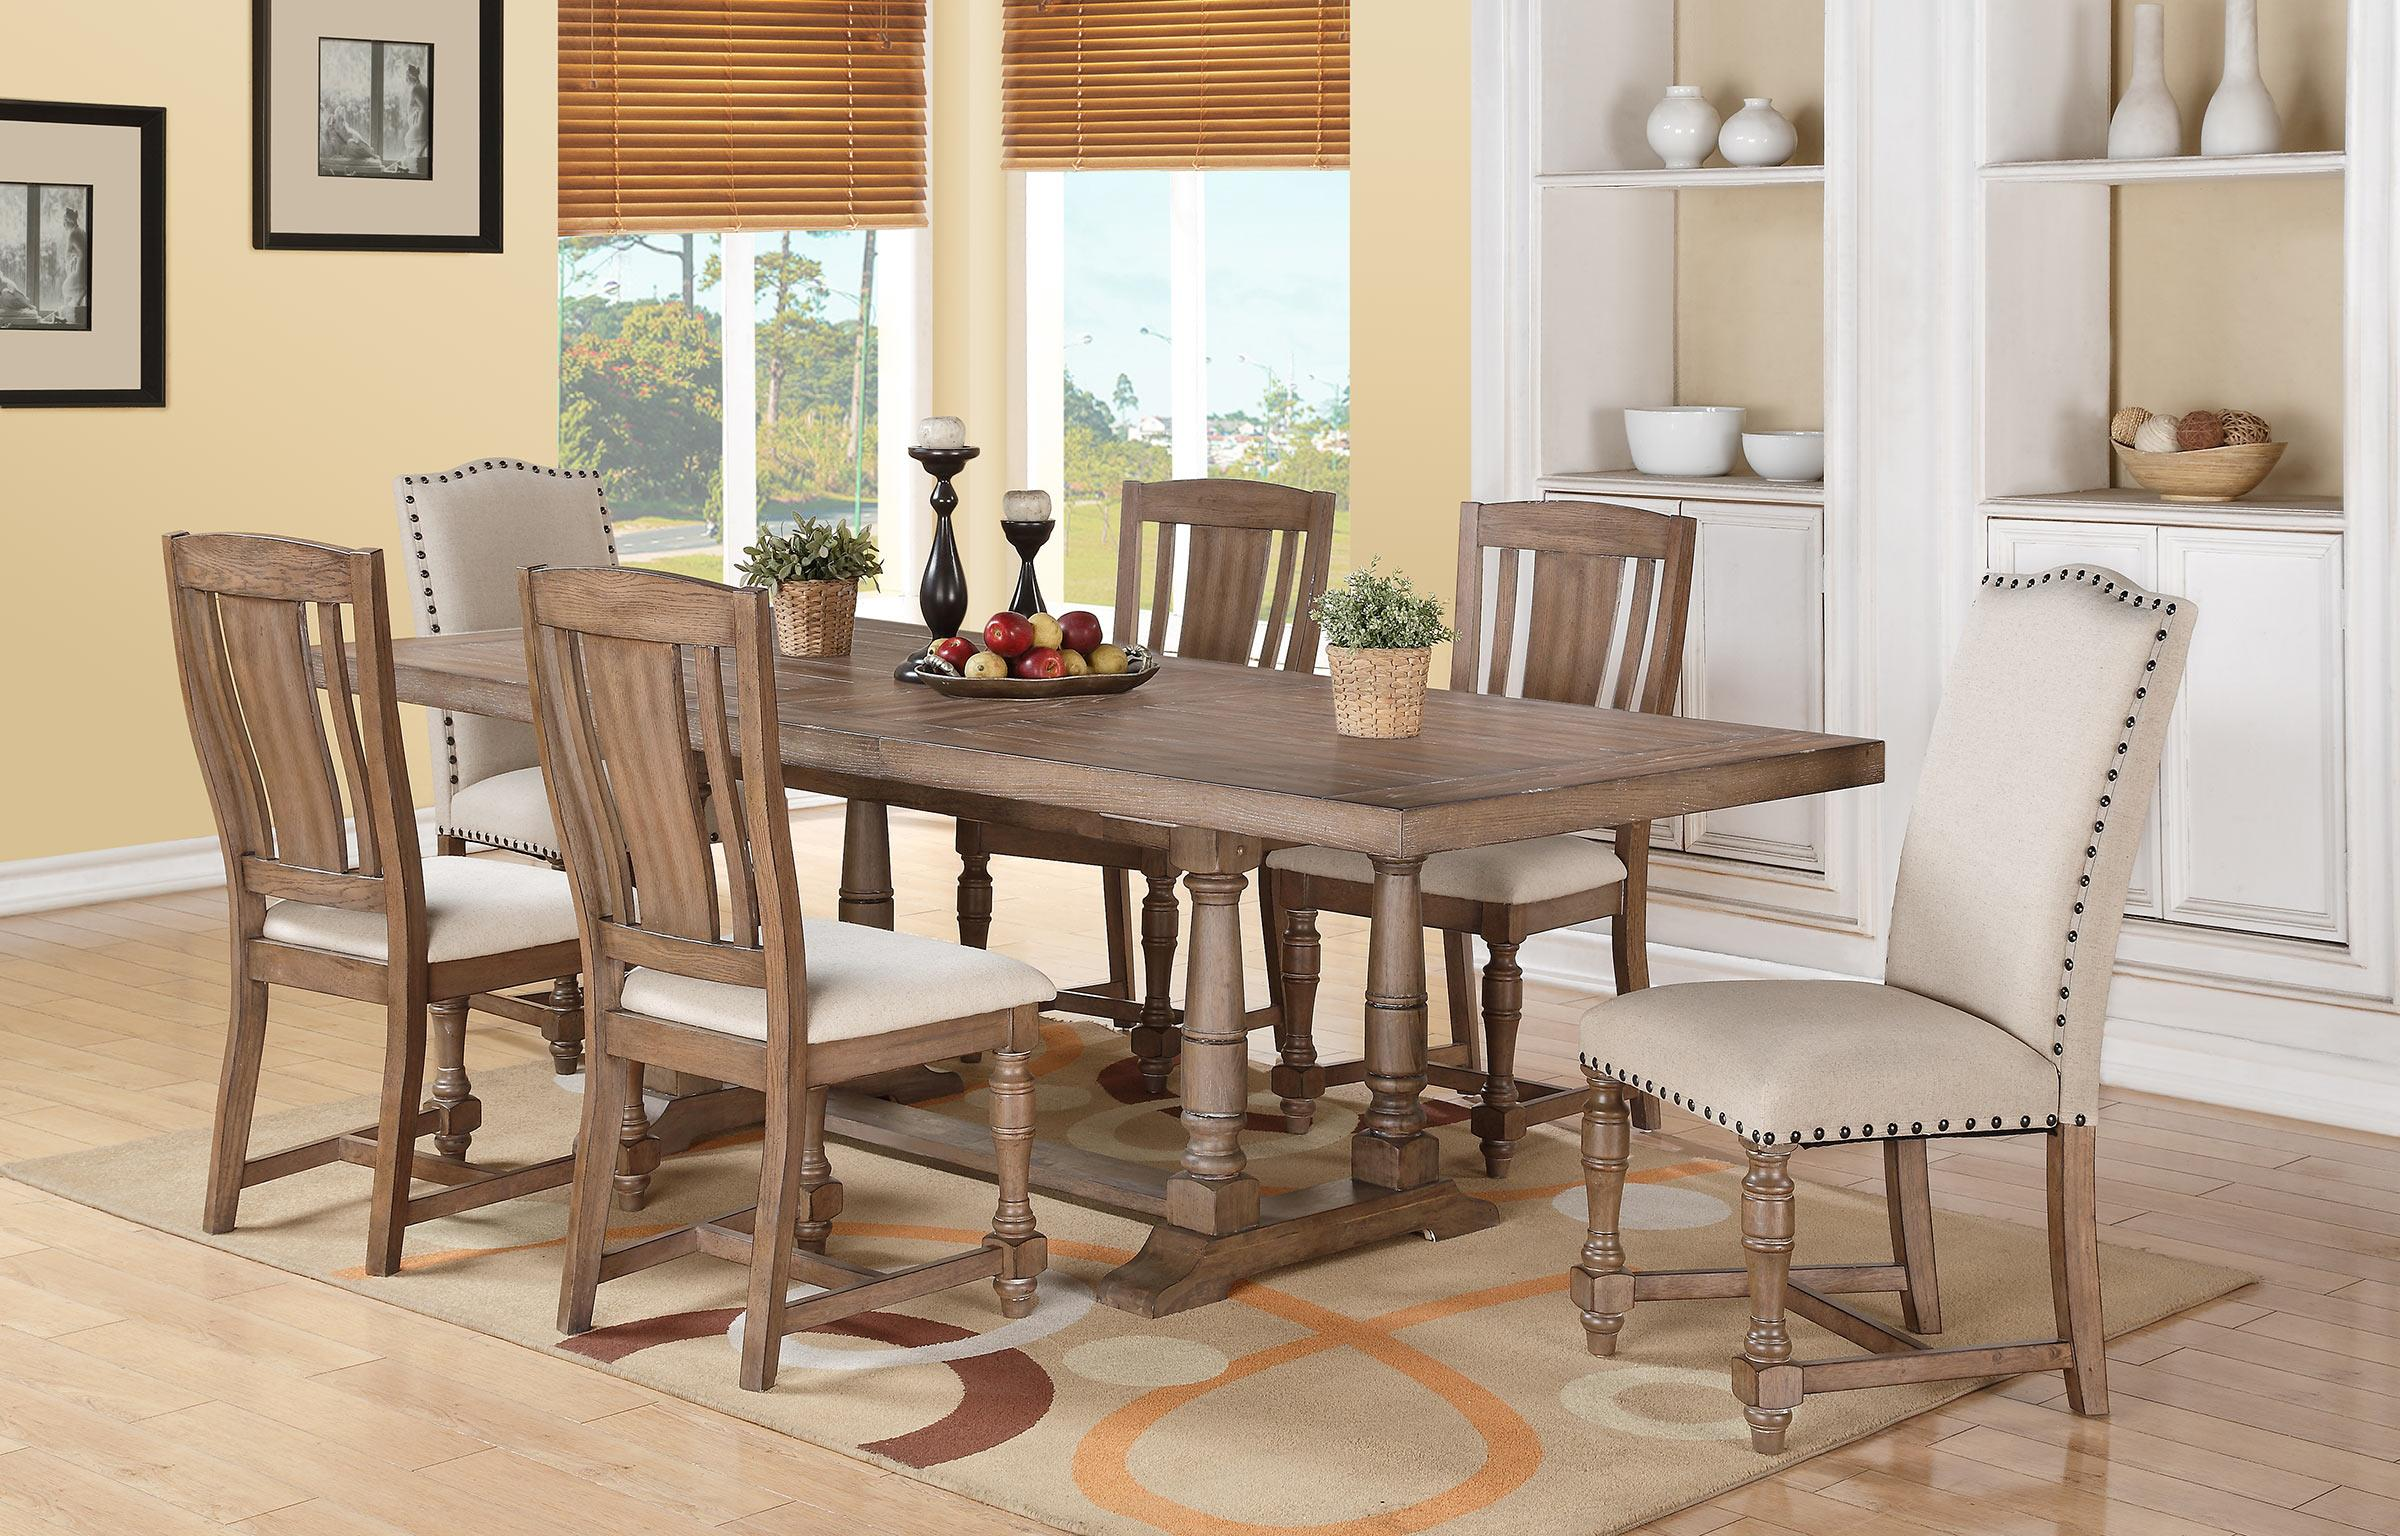 Xcalibur 7 Piece Trestle Table and Upholstered Chair Set Rotmans